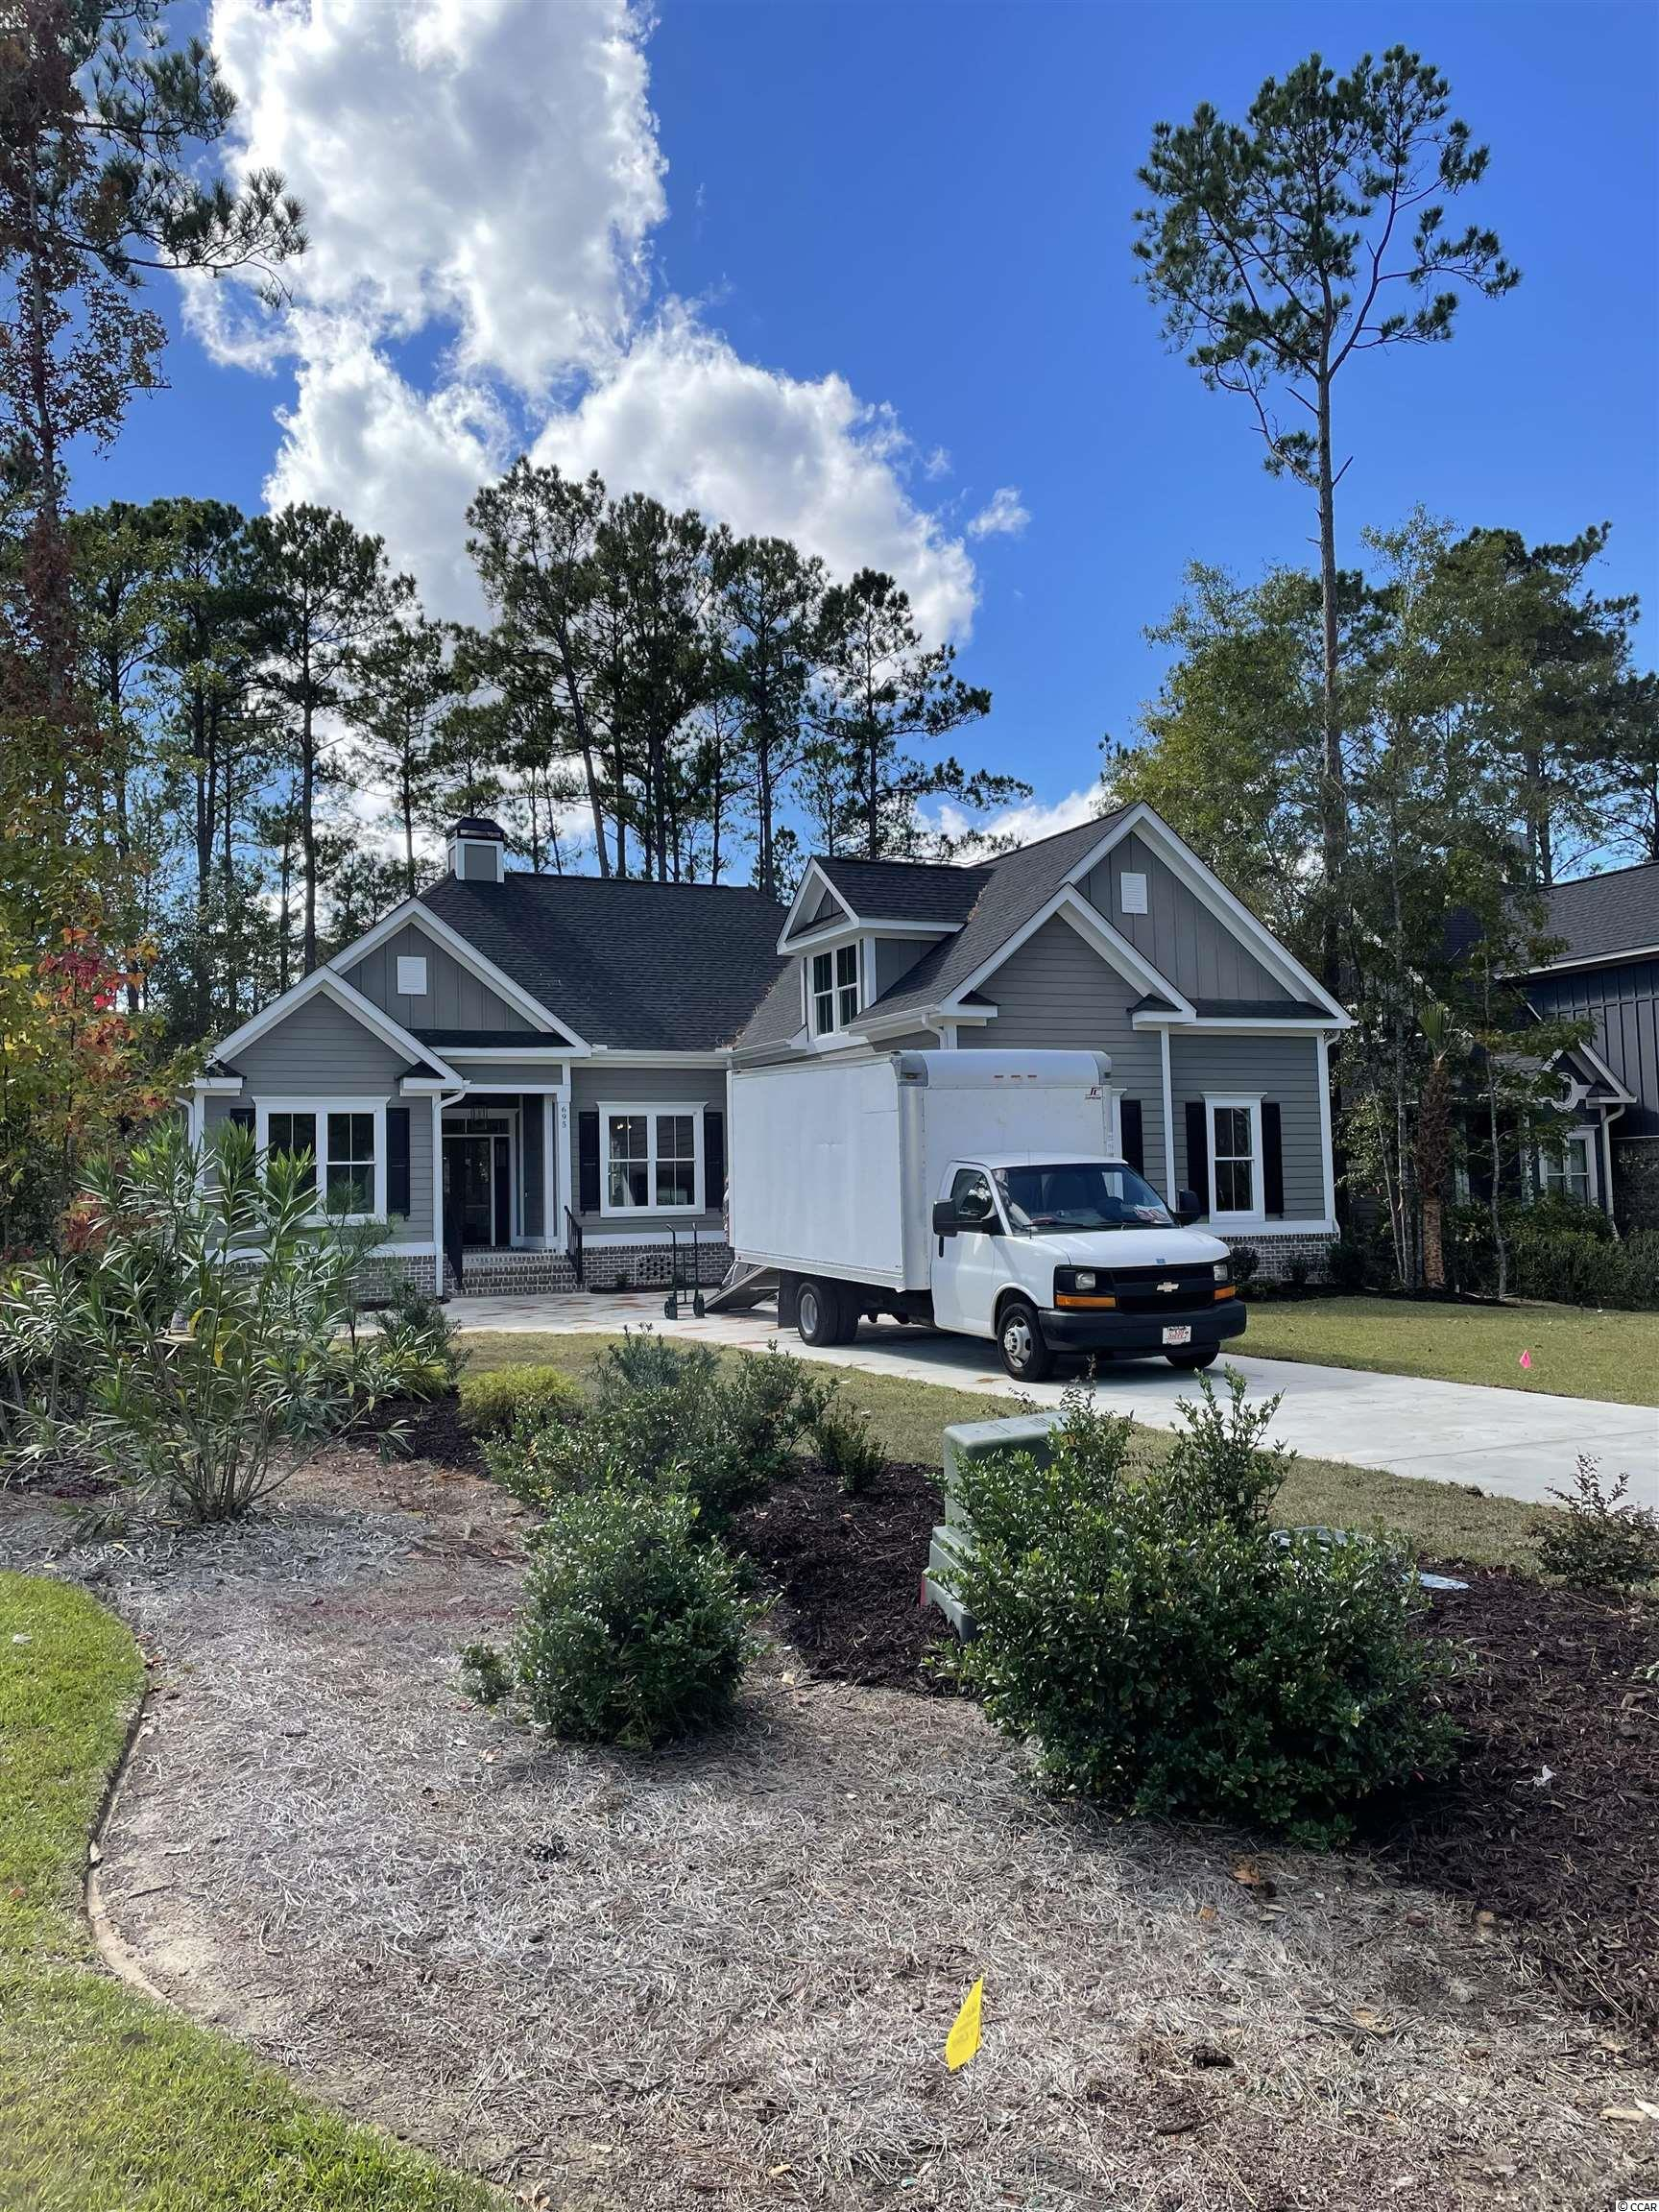 New home under construction in desirable gated community in Murrells Inlet. Close to beaches and excellent dining. Still time to make many of your own selections. Projected completion September.